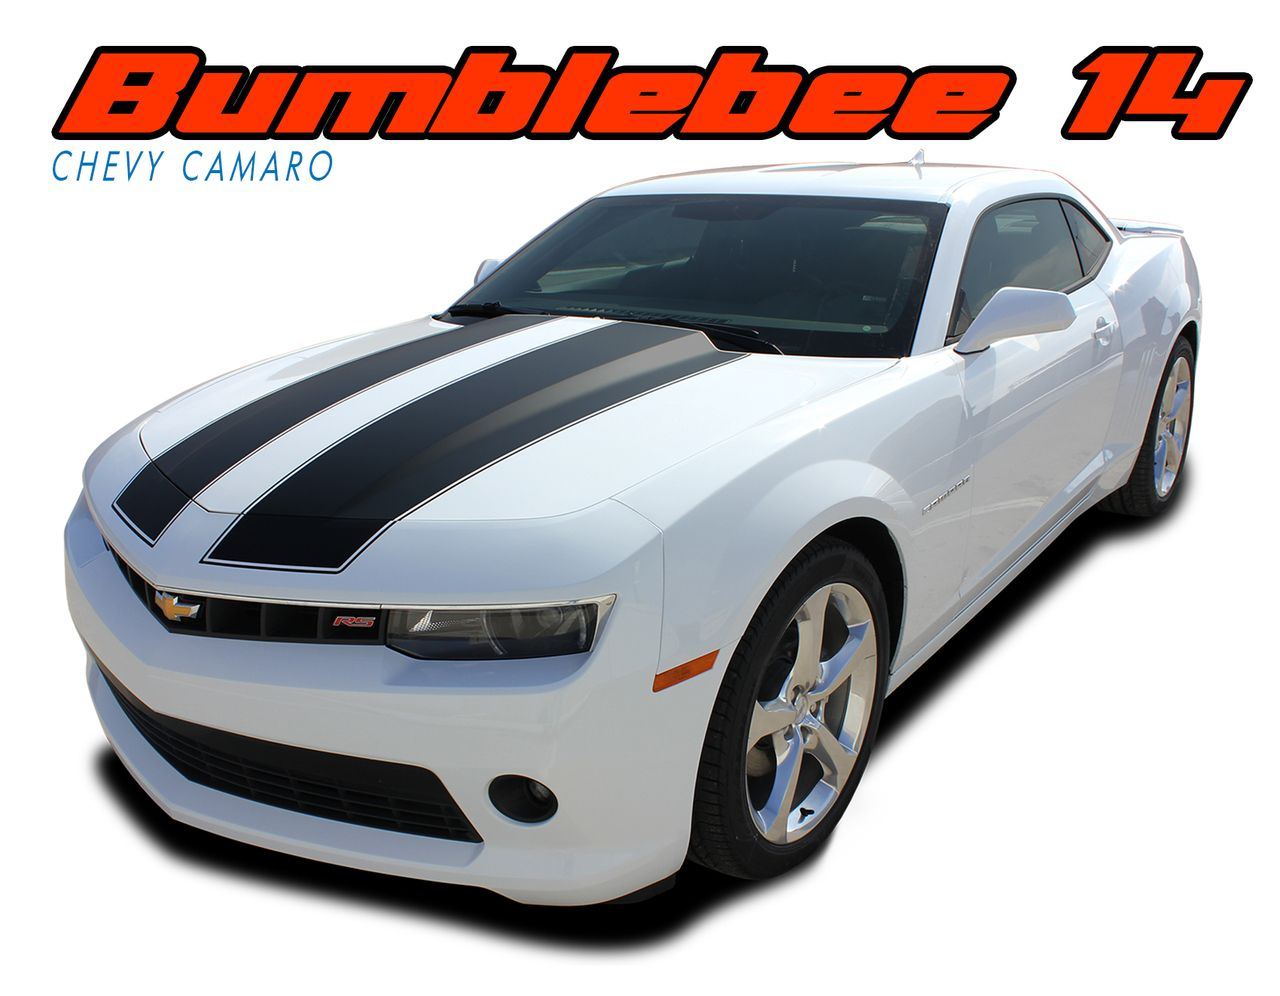 Bumblebee 14 2014 2015 Chevy Camaro Transformers Style Hood Vinyl Graphics Racing Stripes Kit For V6 Coupe Models Chevy Camaro Camaro Vinyl Graphics